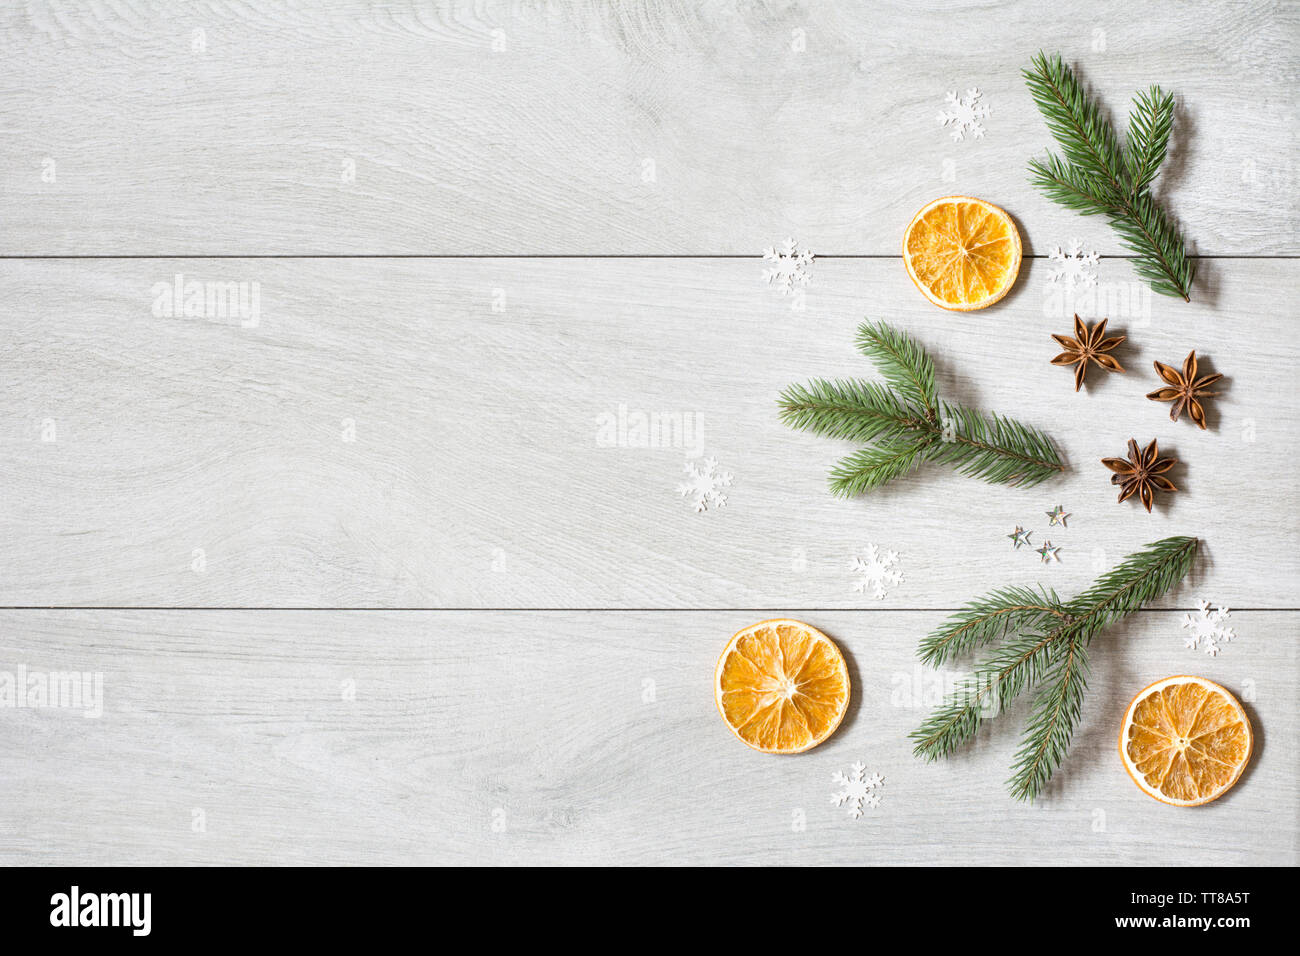 Christmas card with dried oranges, aniseed stars, fir tree branches and snow flakes on white wooden background - text space, deep shadows - Stock Image